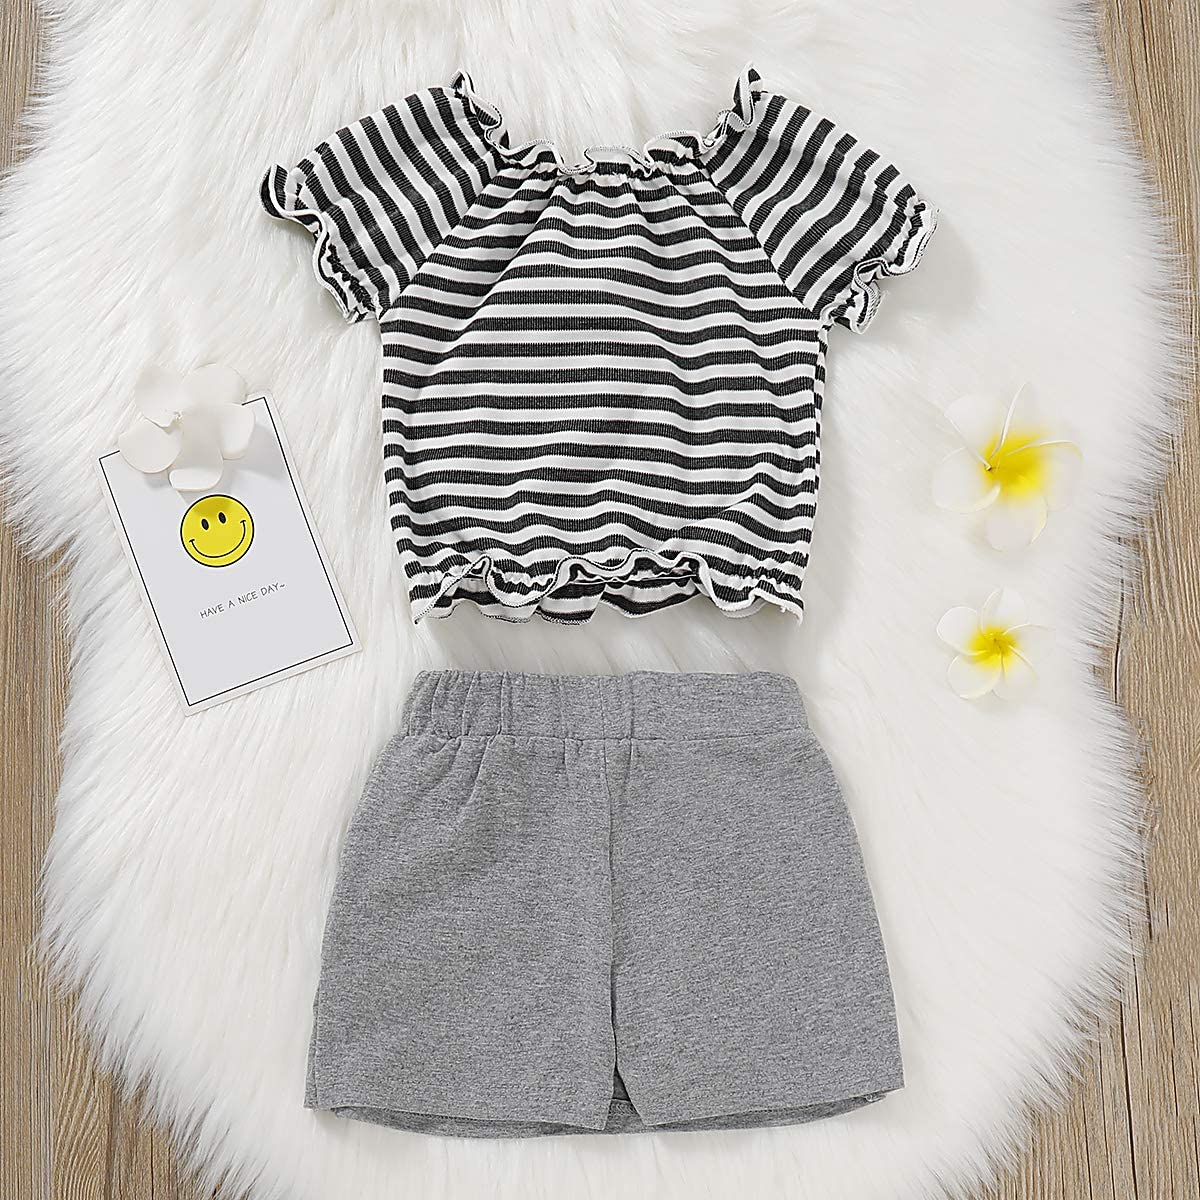 Toddler Baby Girls Camouflage Outfit Black Letter Tops T-Shirt Skirt Dress Shorts Summer Two Piece Clothes Set